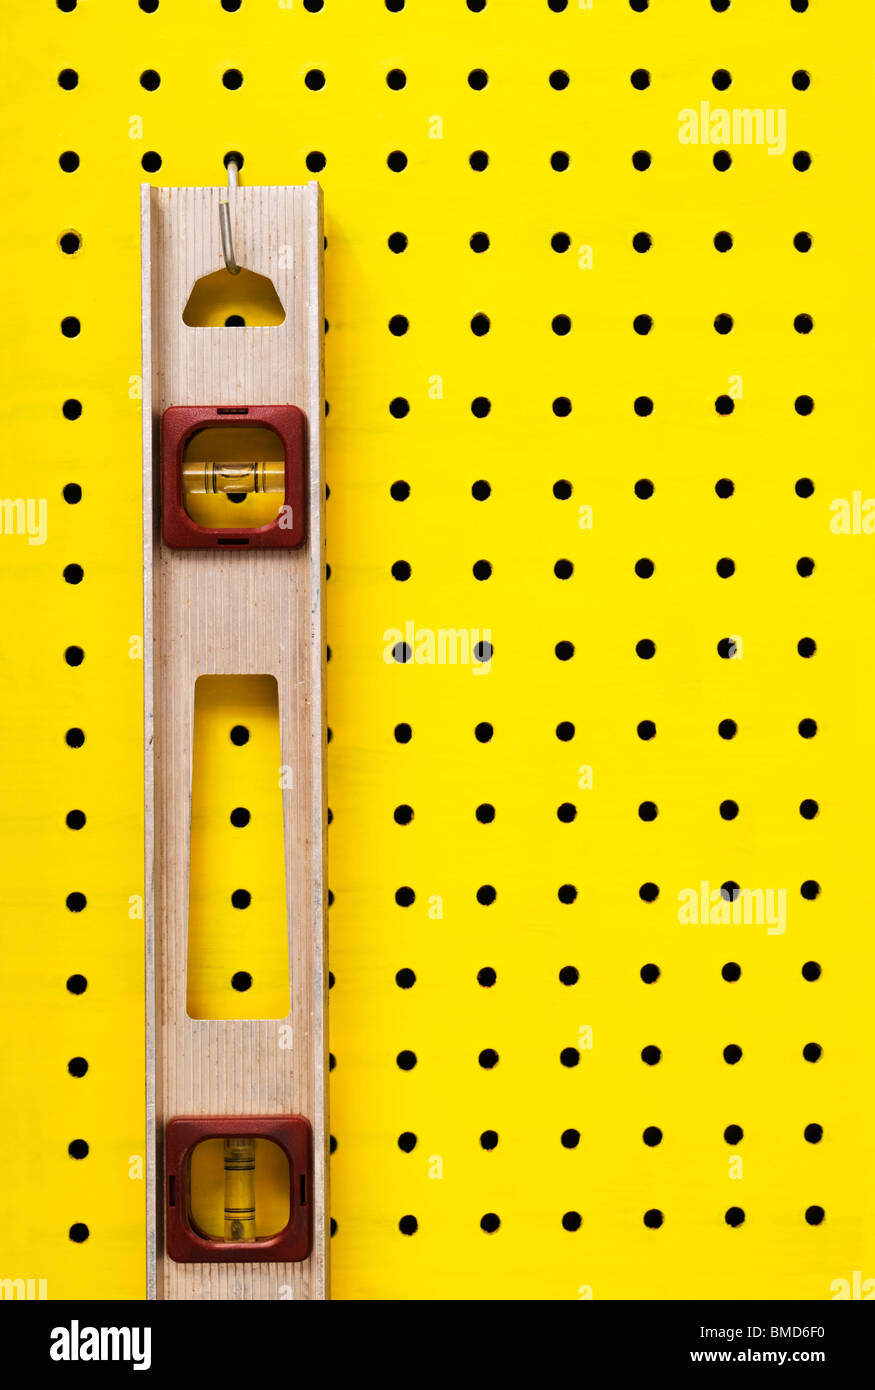 Old level hangs from a hook on yellow pegboard. - Stock Image